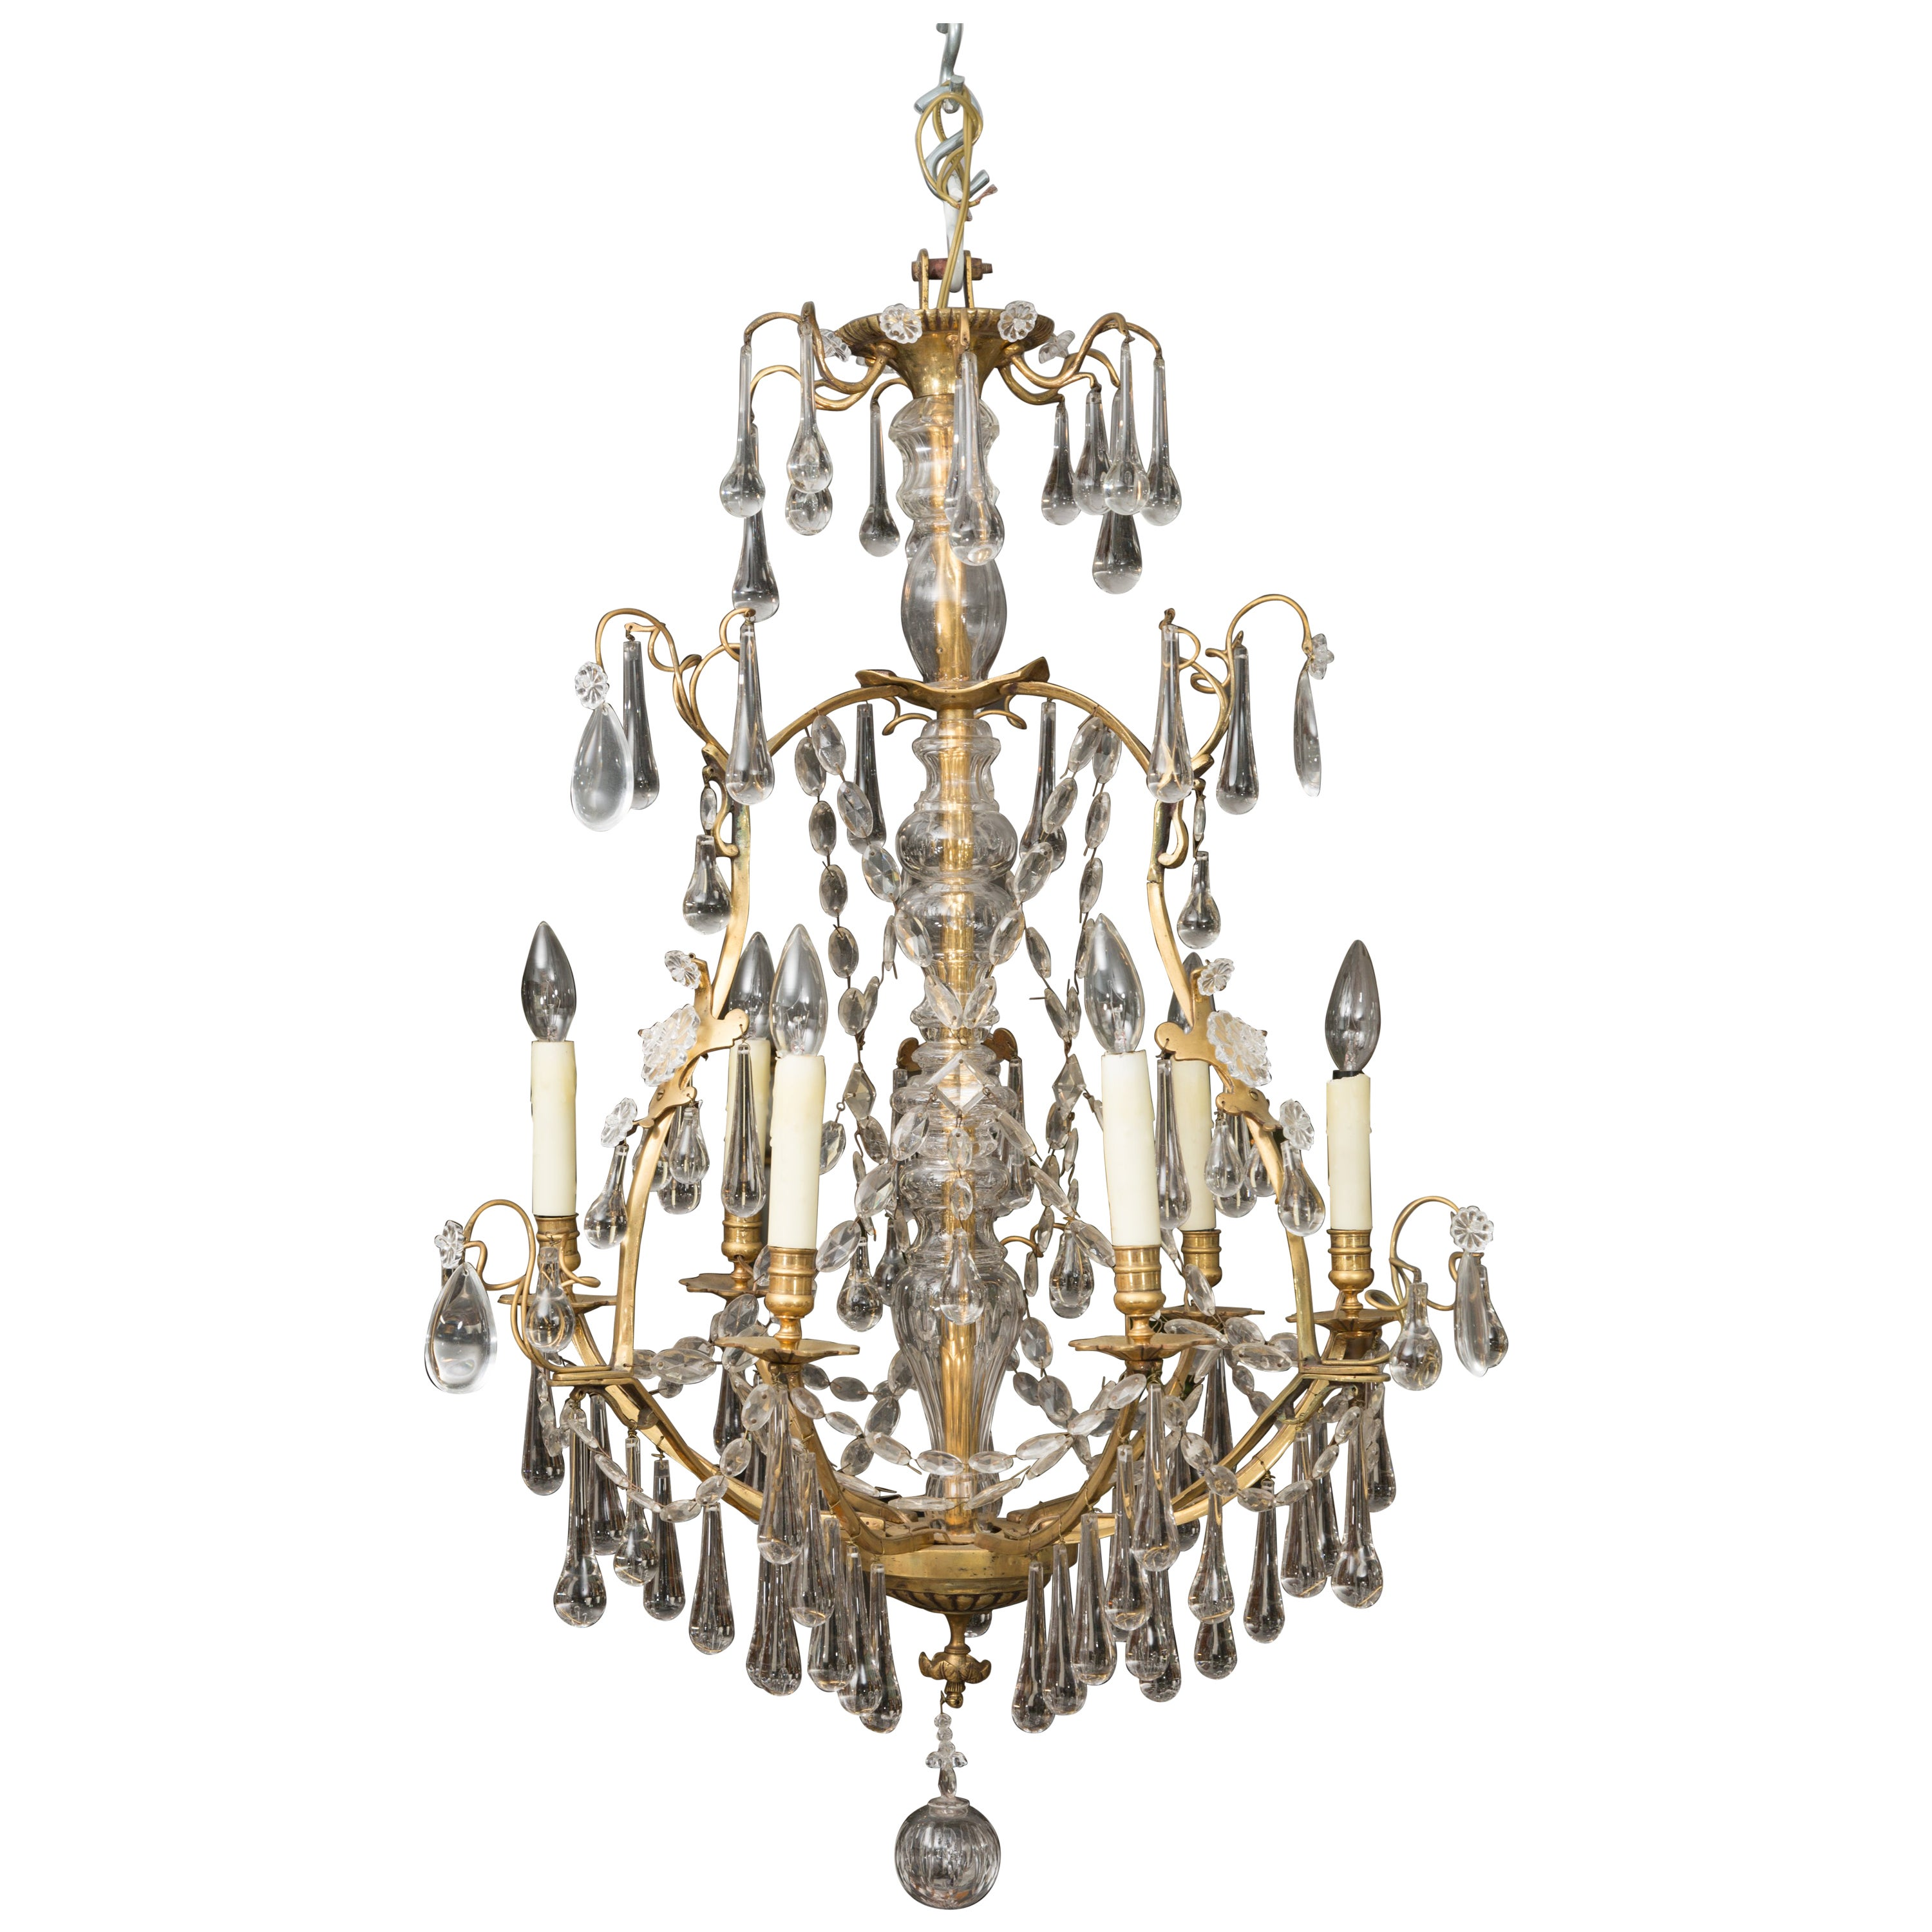 French Birdcage Chandelier with Crystal Drops